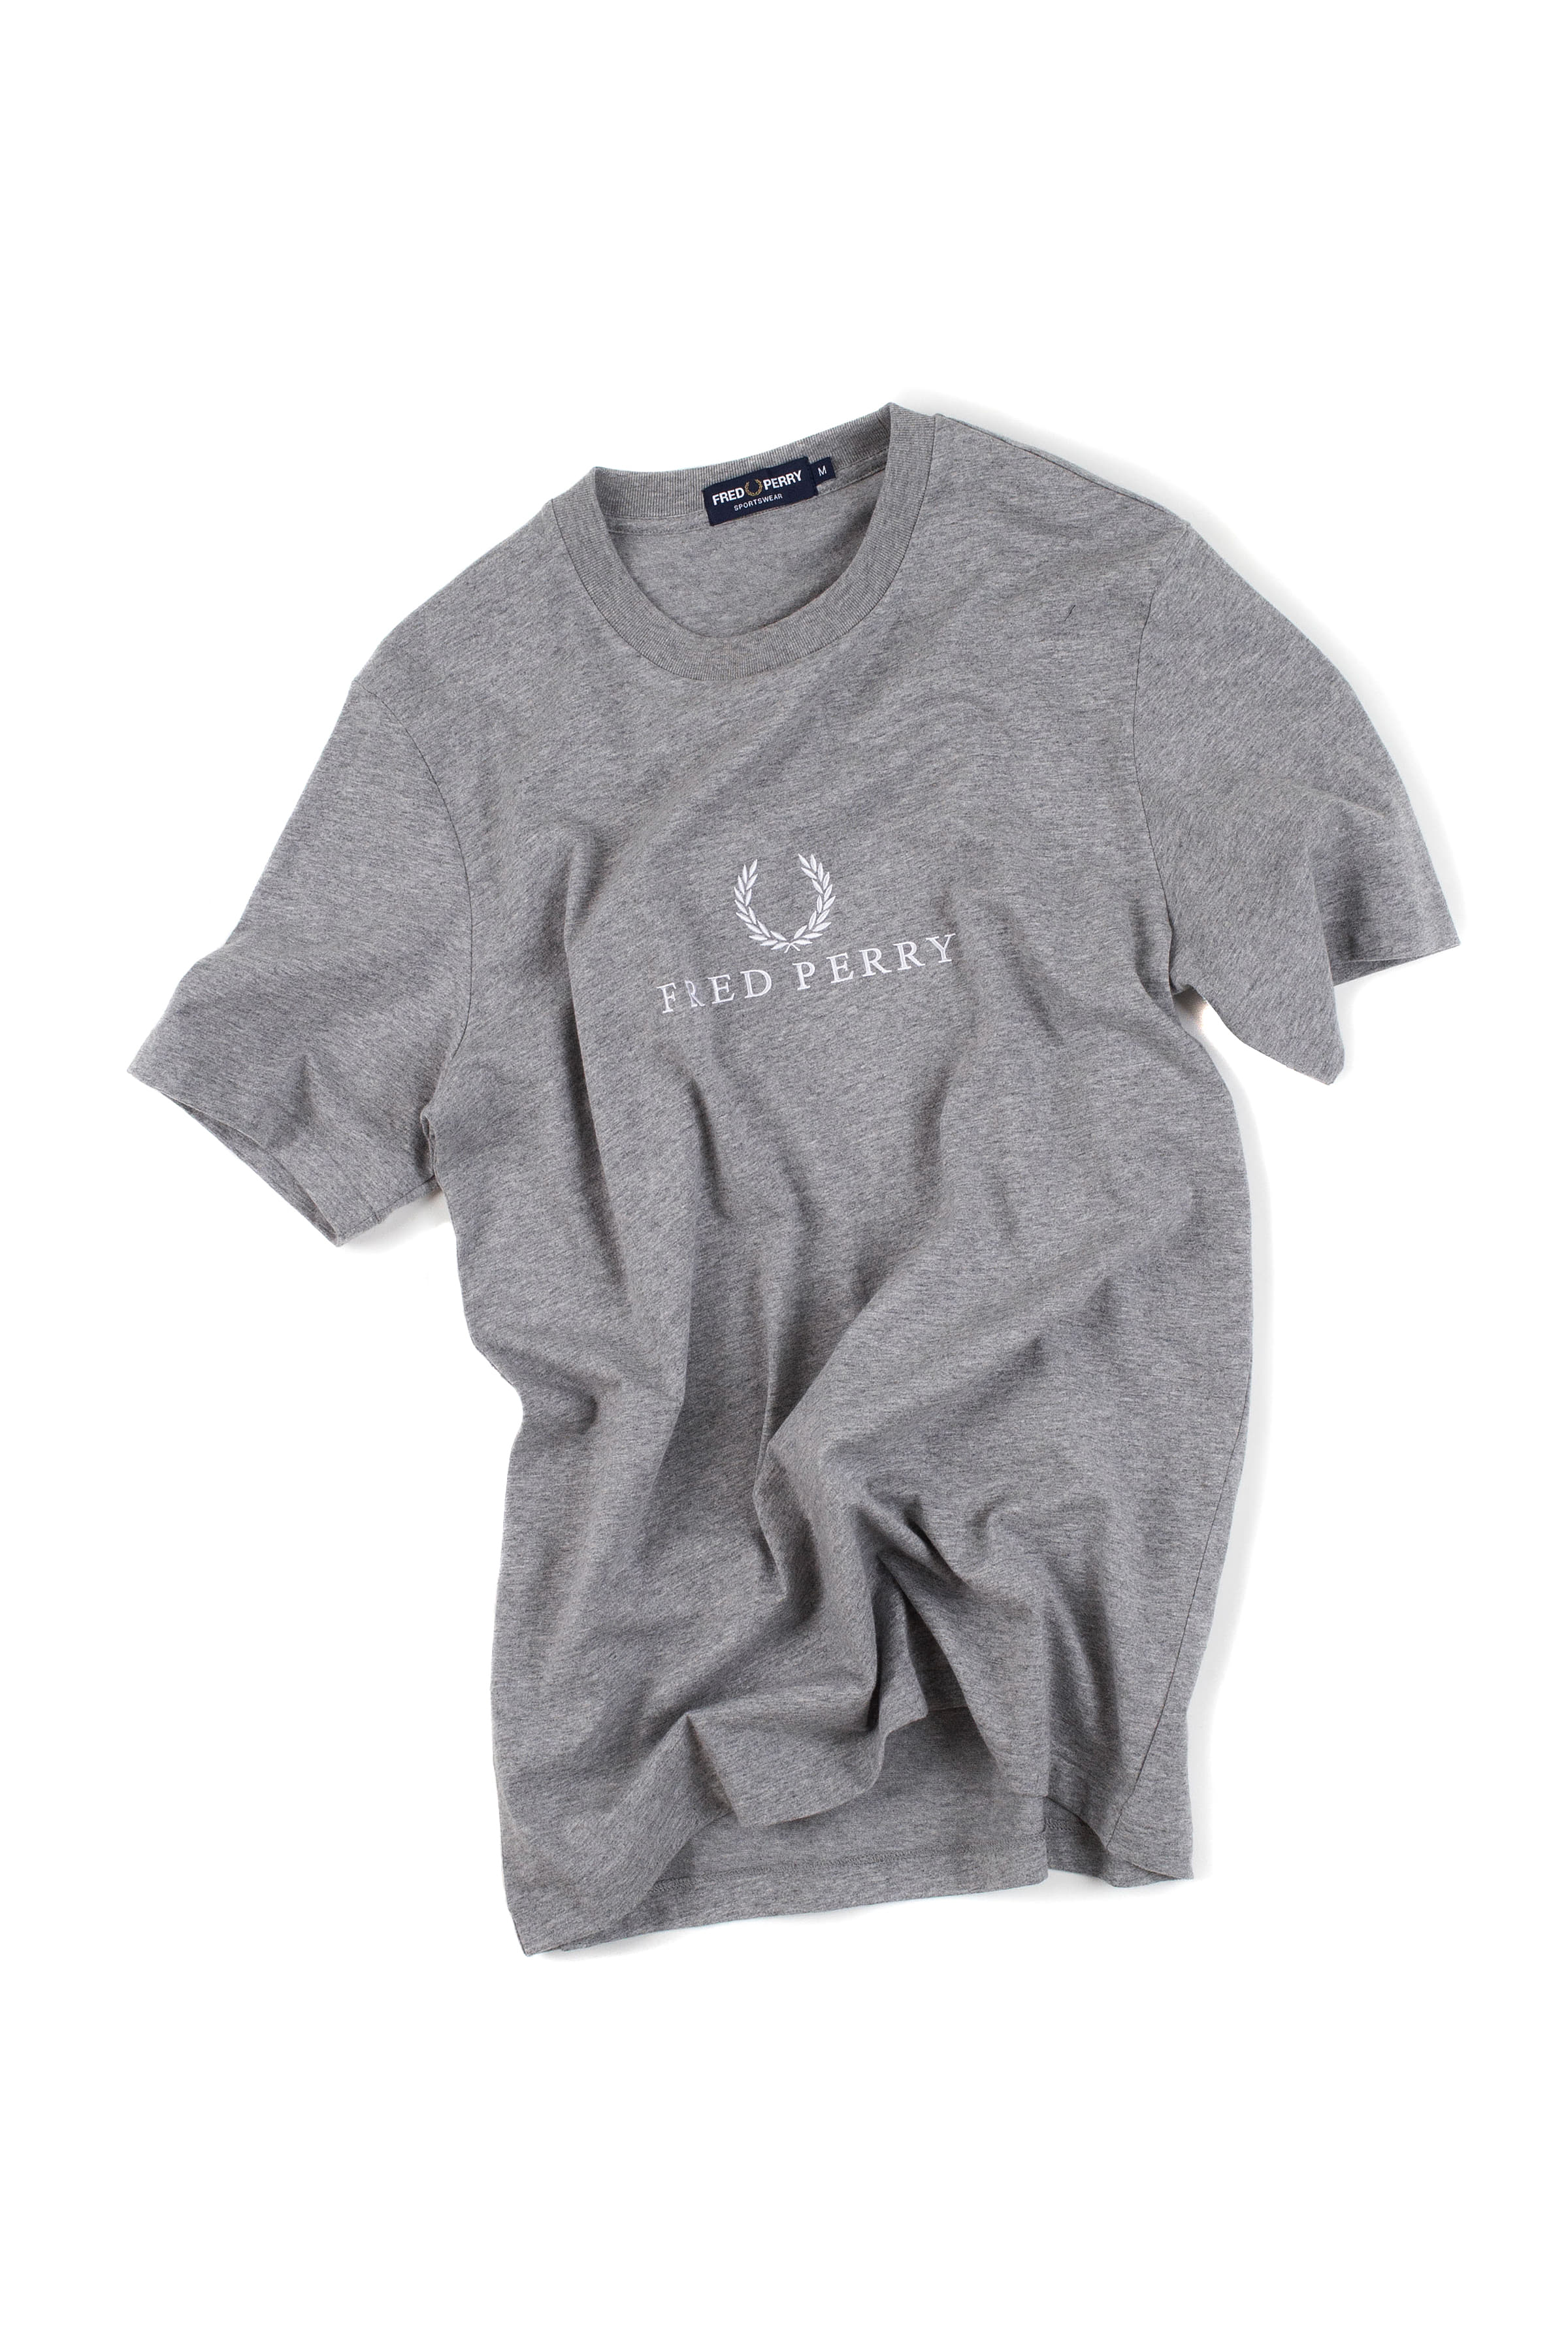 FRED PERRY : Embroidered T-Shirt (Grey)